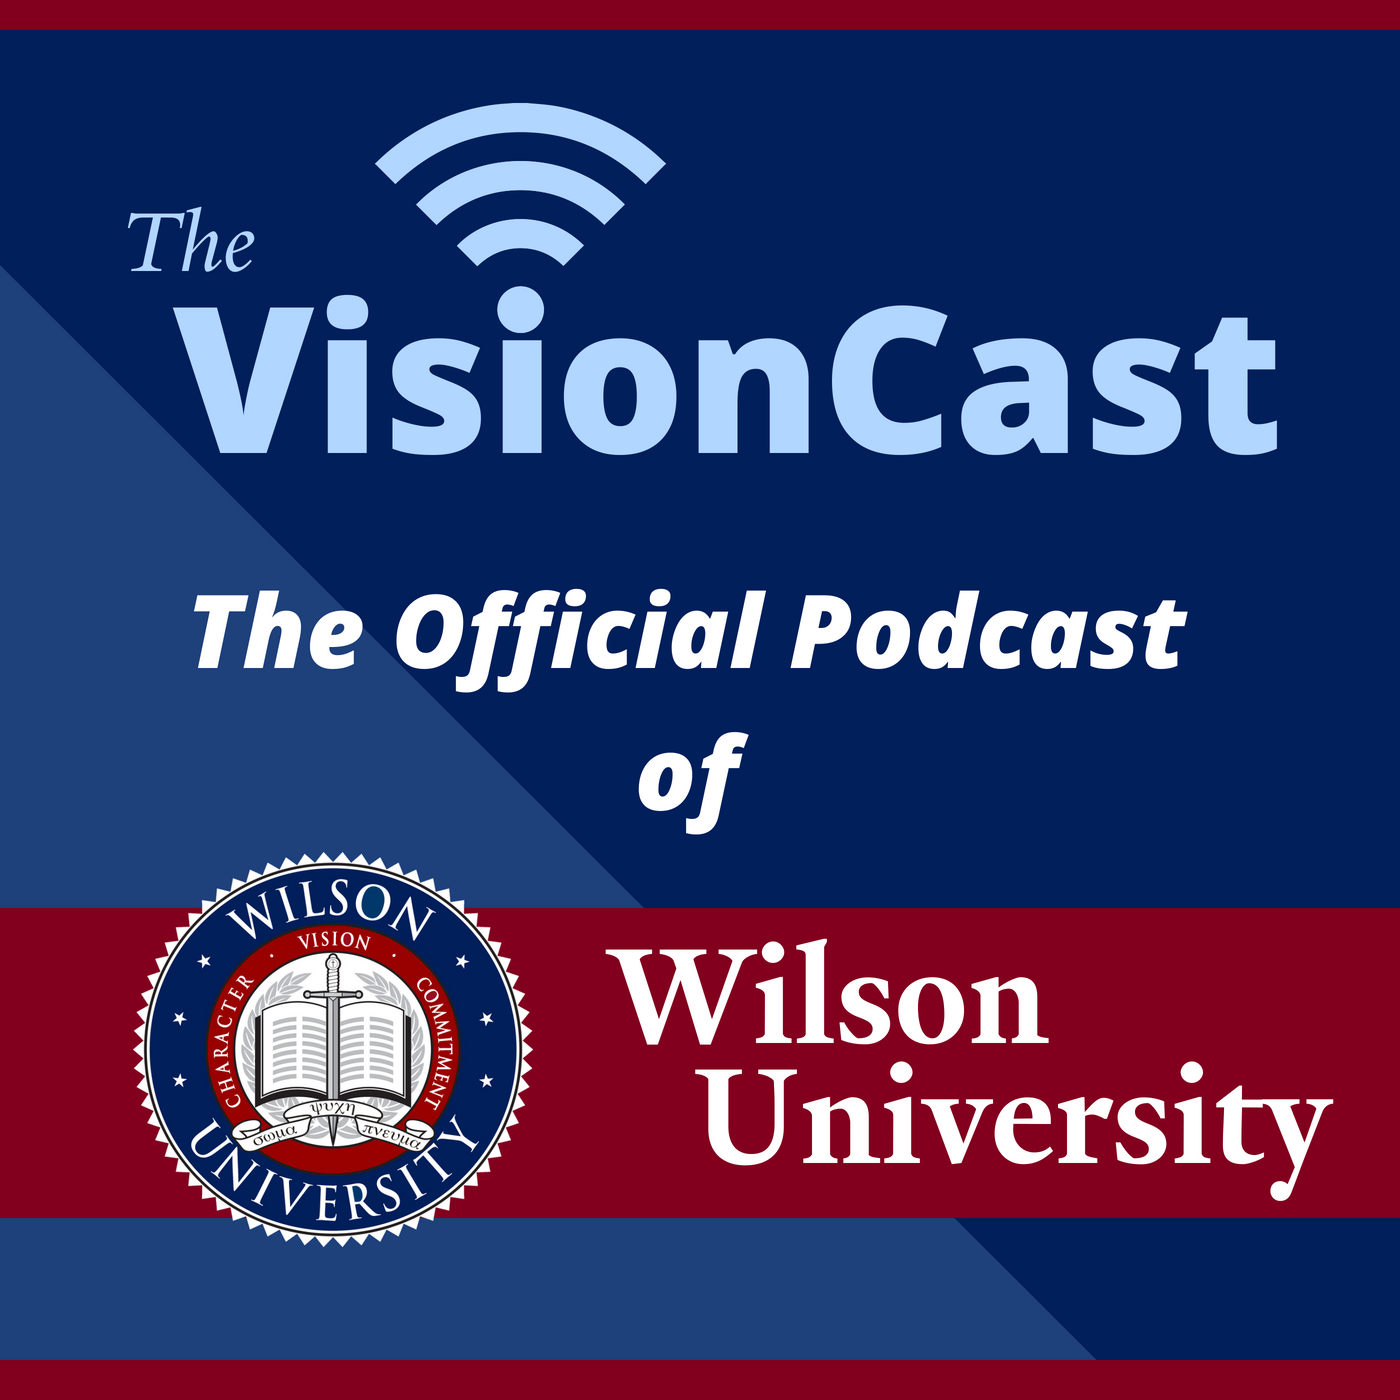 The VisionCast 001: Wilson University Promo with Dr. Wilson